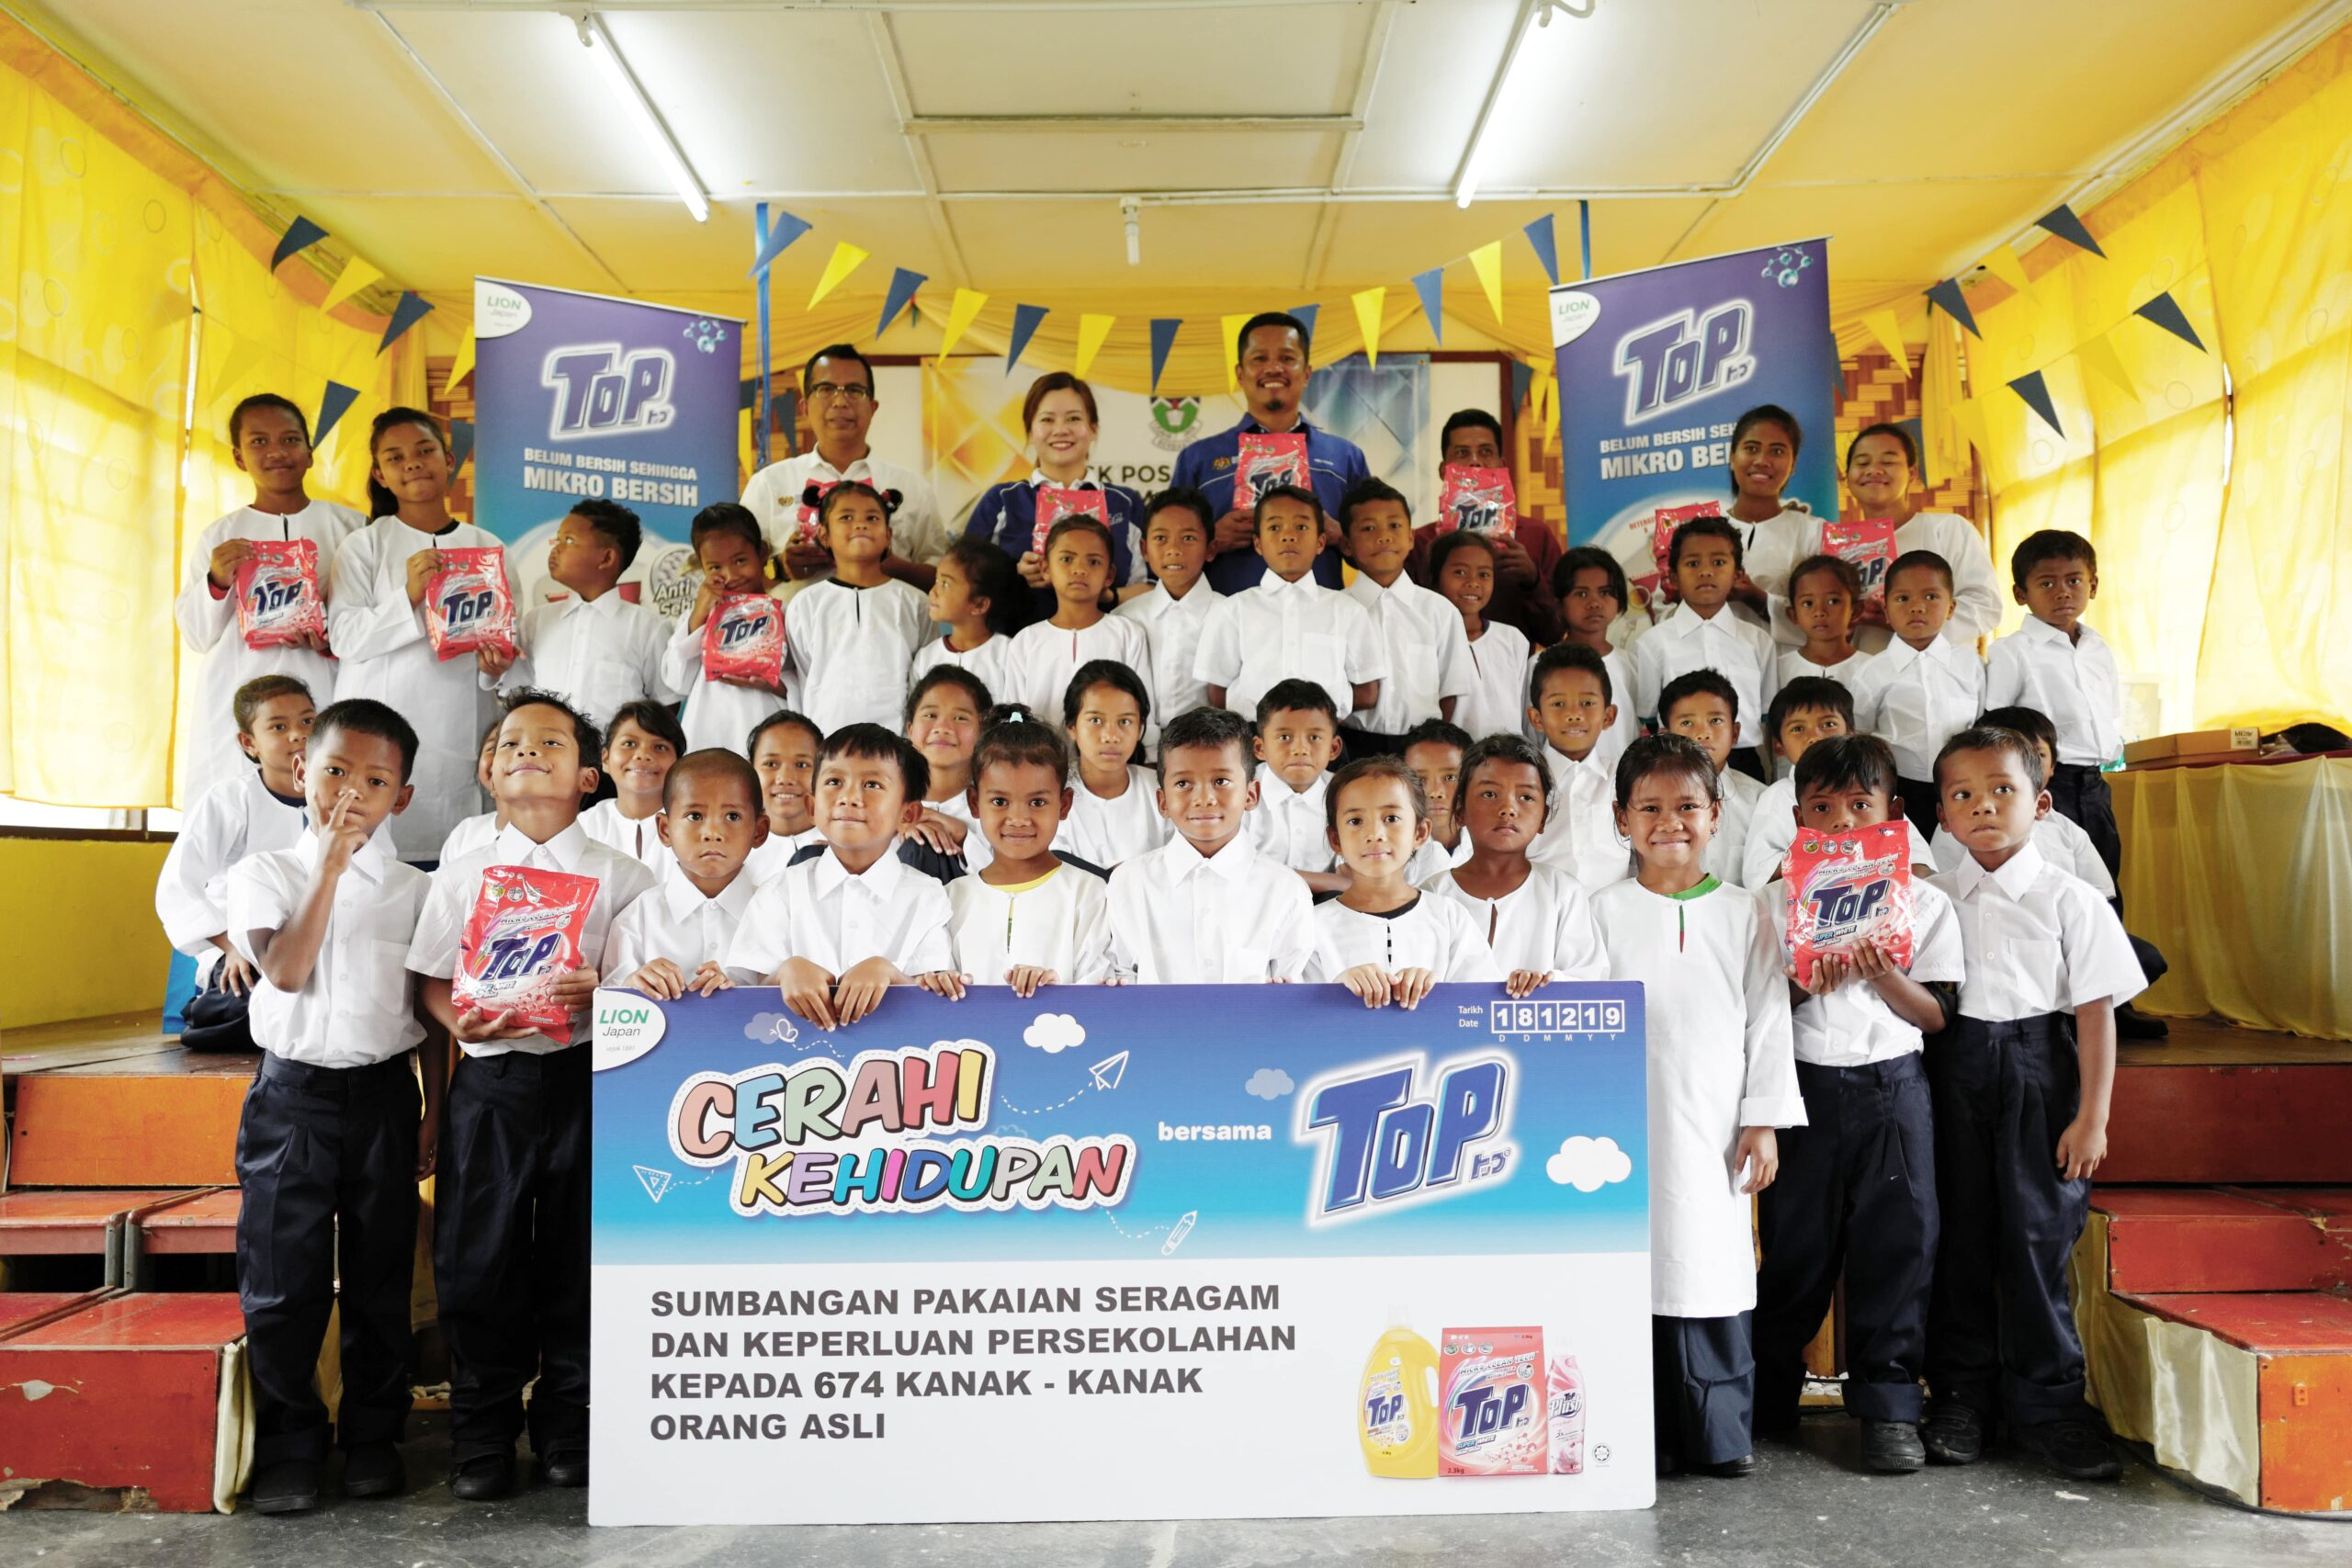 Popular detergent brand does CSR for Orang Asli children